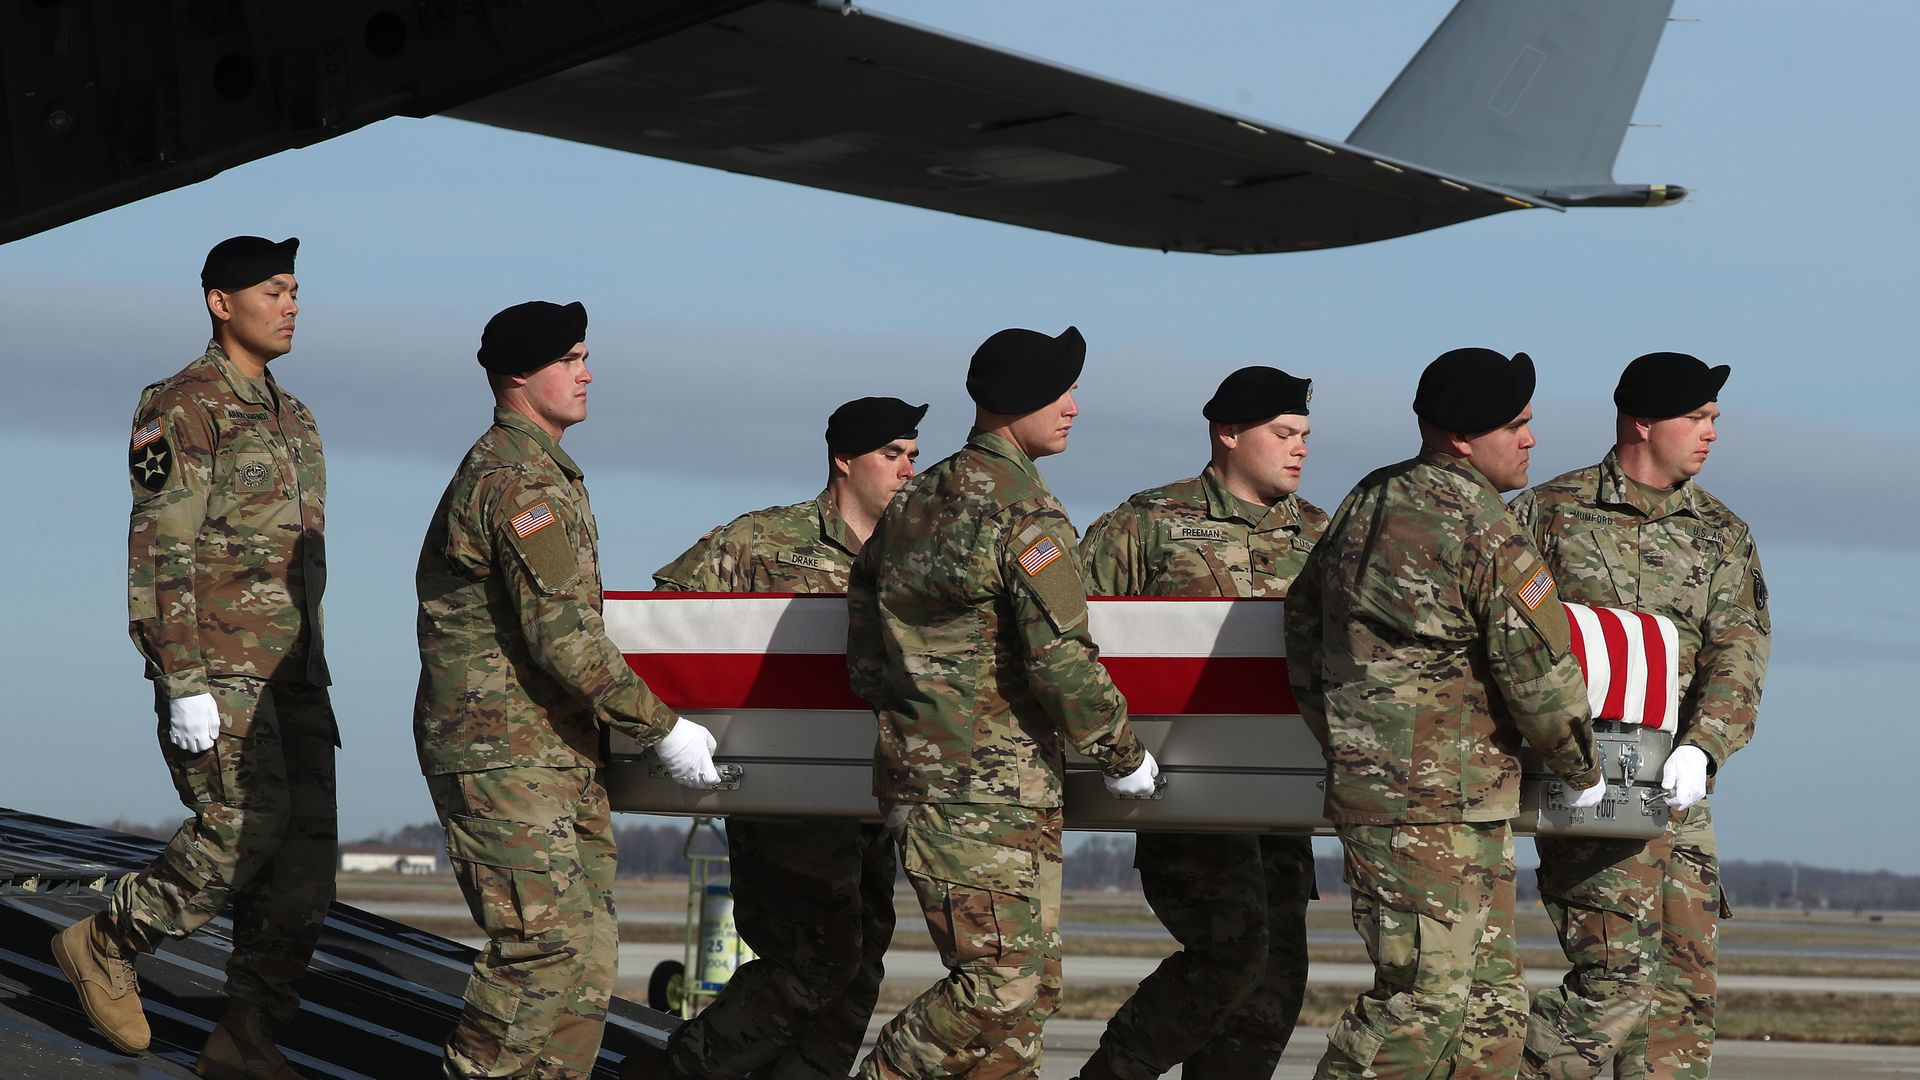 U.S. Army carry team moves the transfer case containing remains of U.S. Army Sgt. 1st Class Michael Goble.